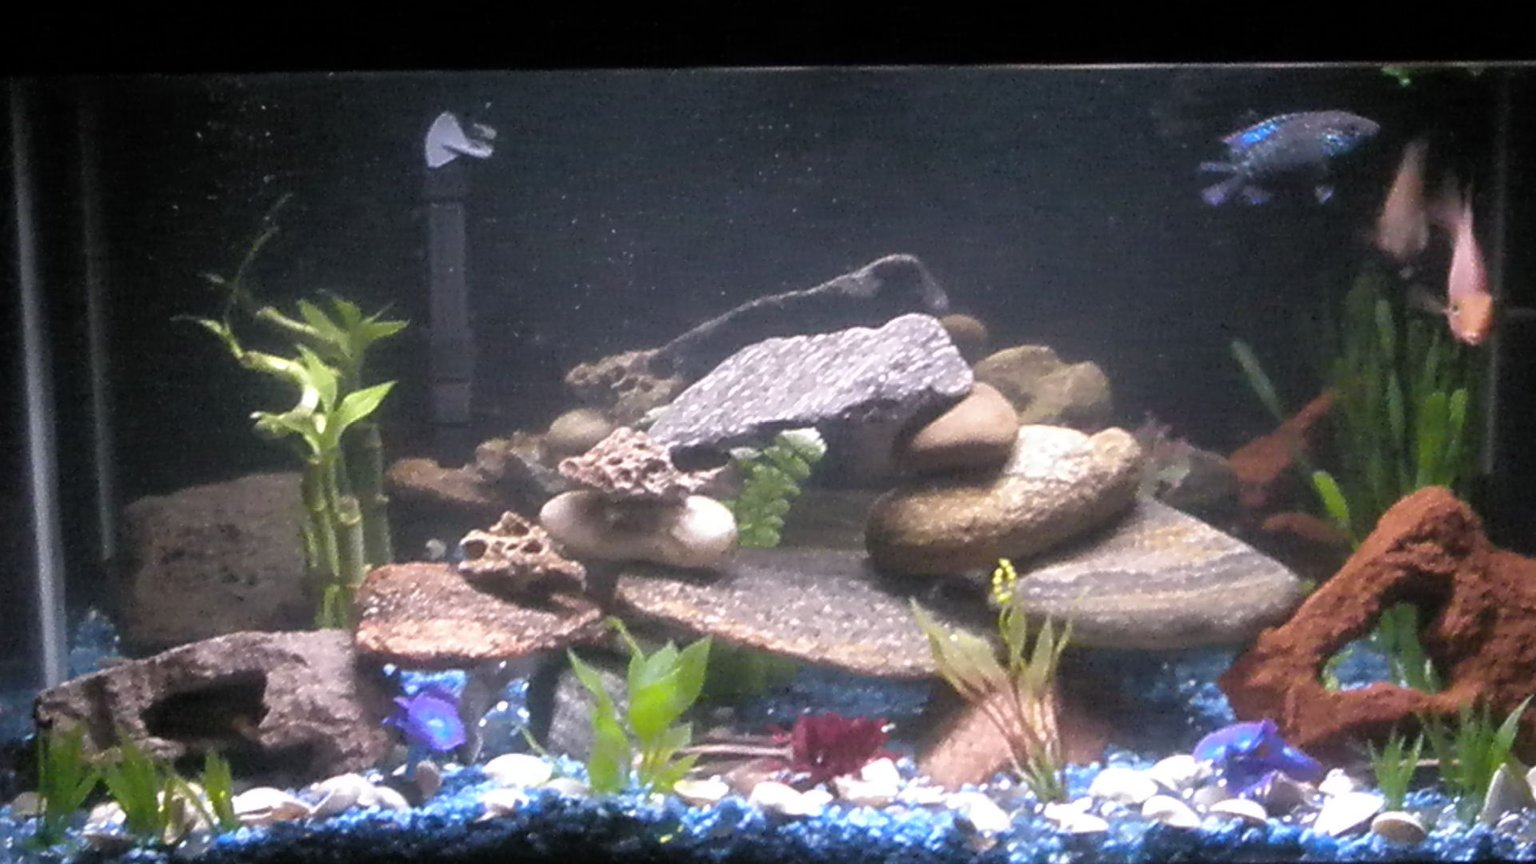 35 gallons planted tank (mostly live plants and fish) - Our 35 gallon tank. I see not many people like it..the picture isnt that good but still this is better than some other tanks i see come on now